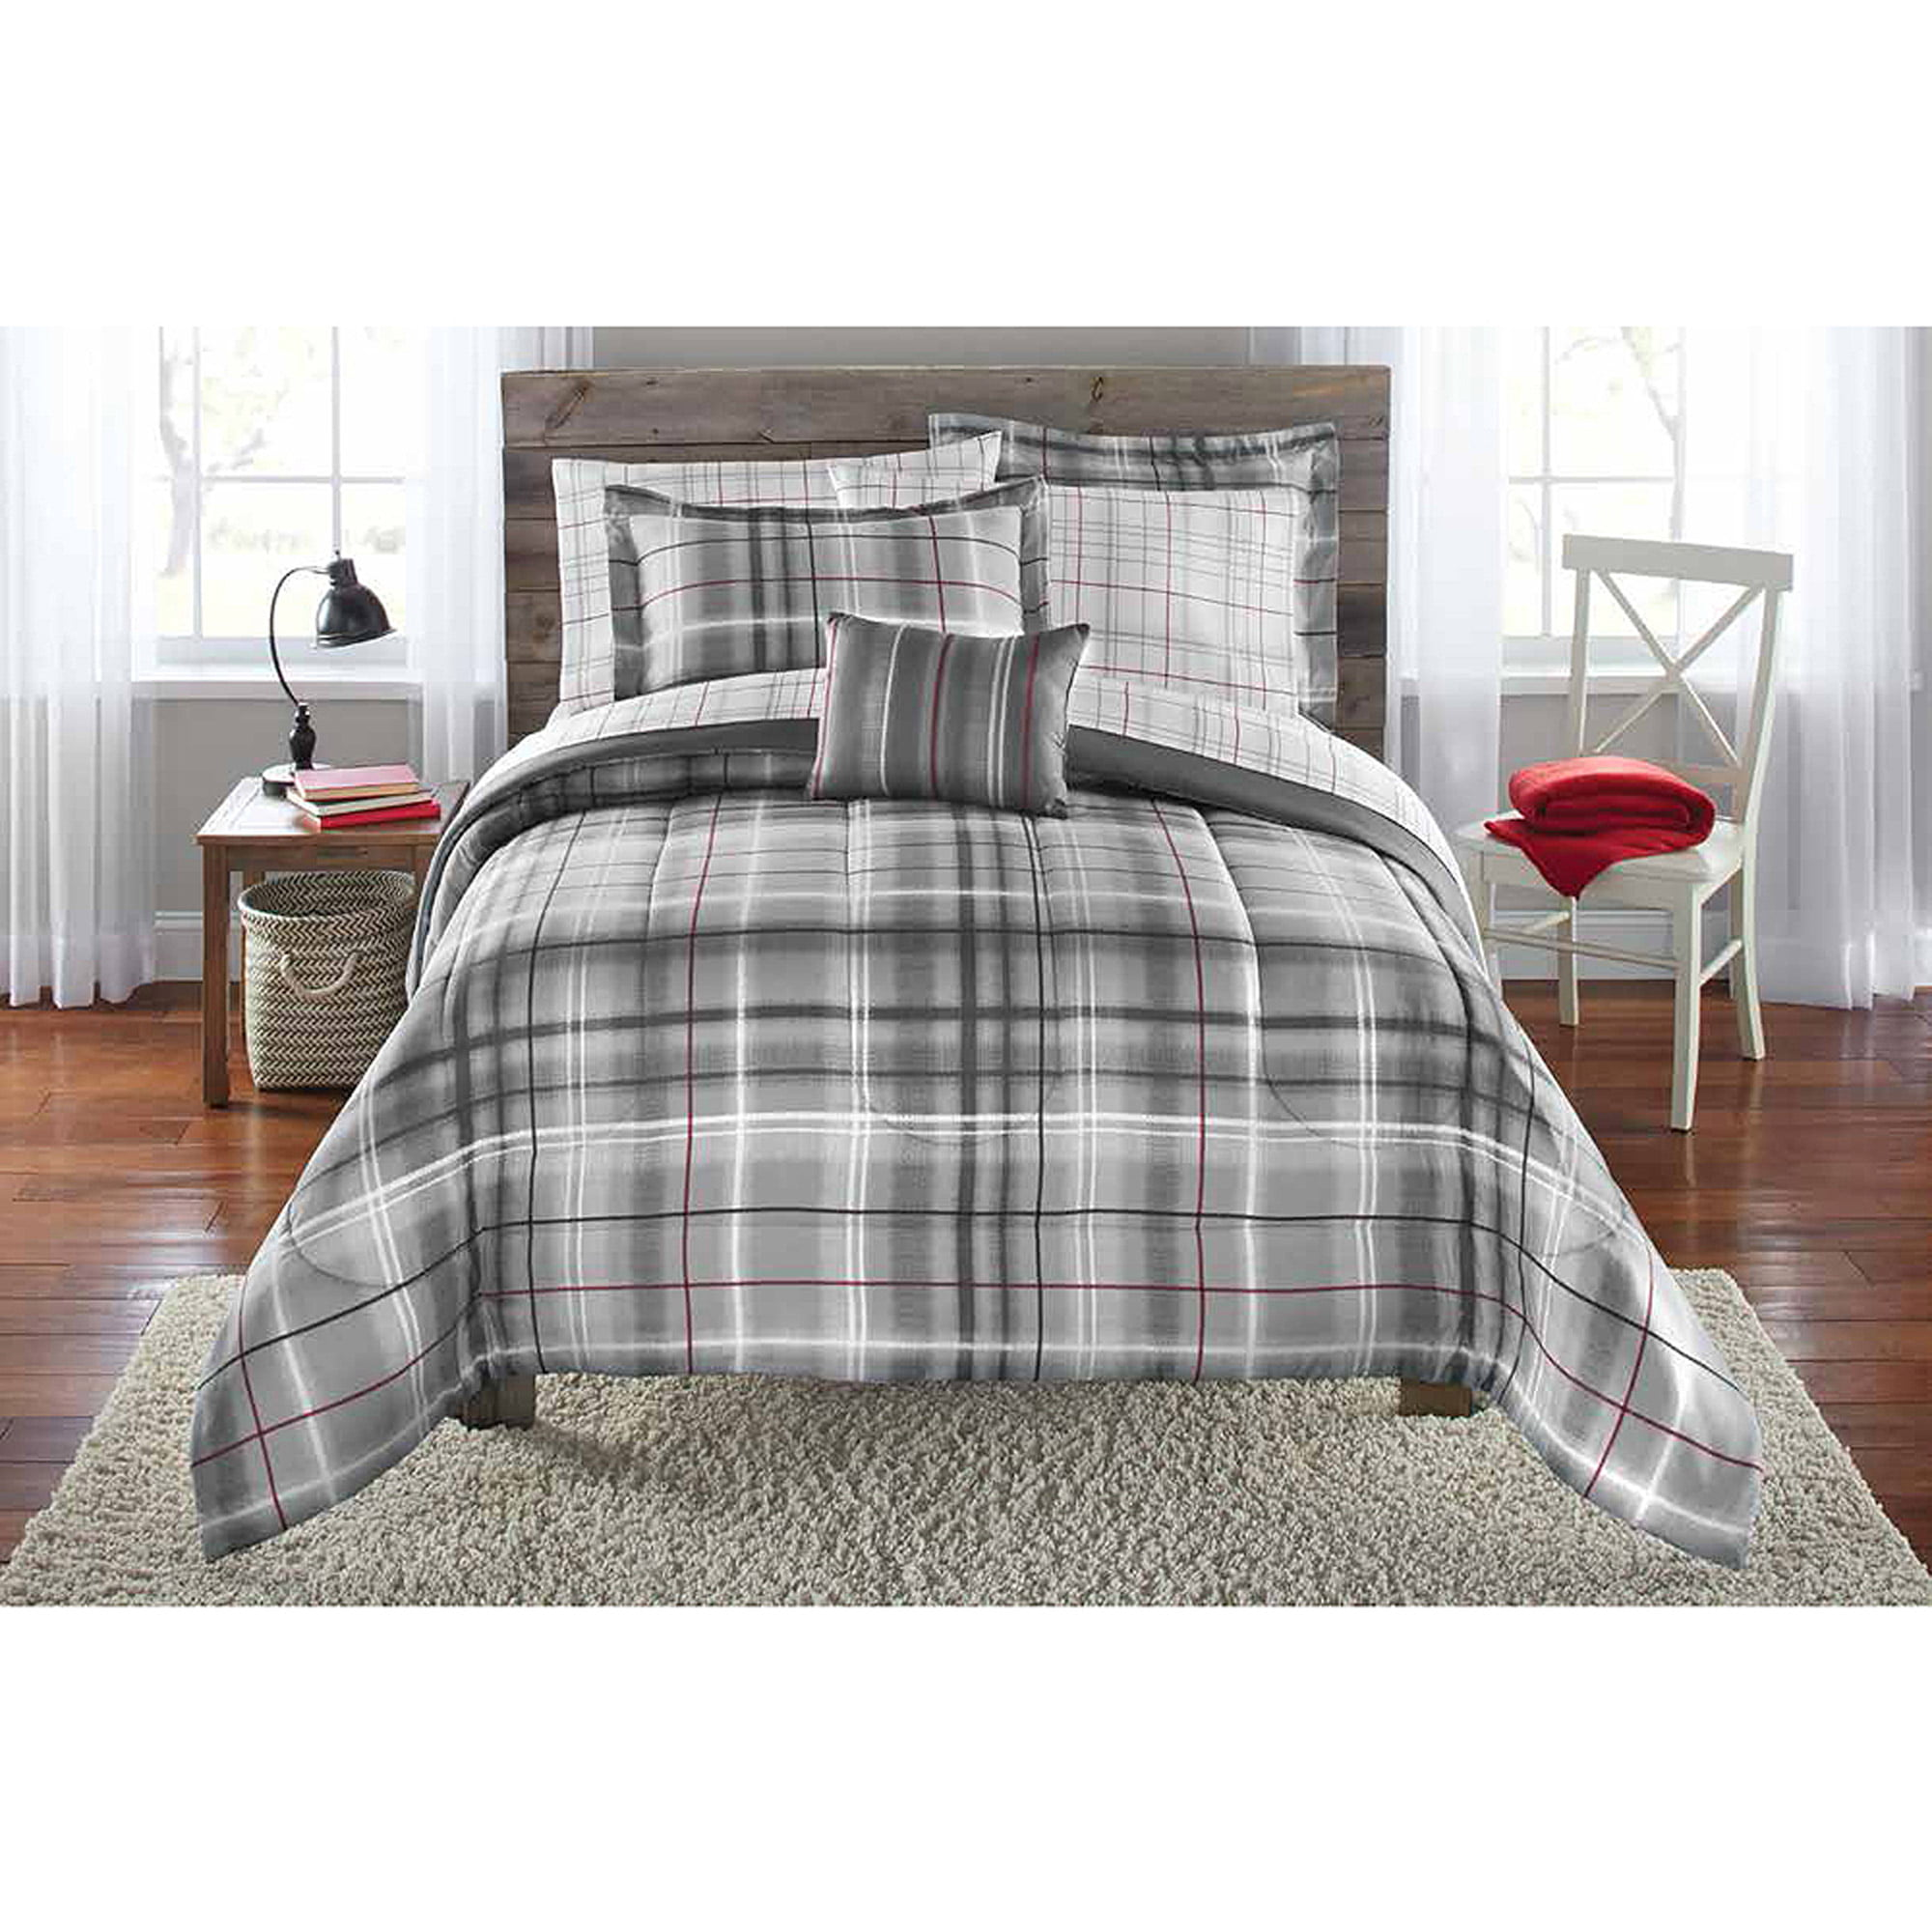 mainstays bedinabag bedding comforter set grey plaid  walmartcom -